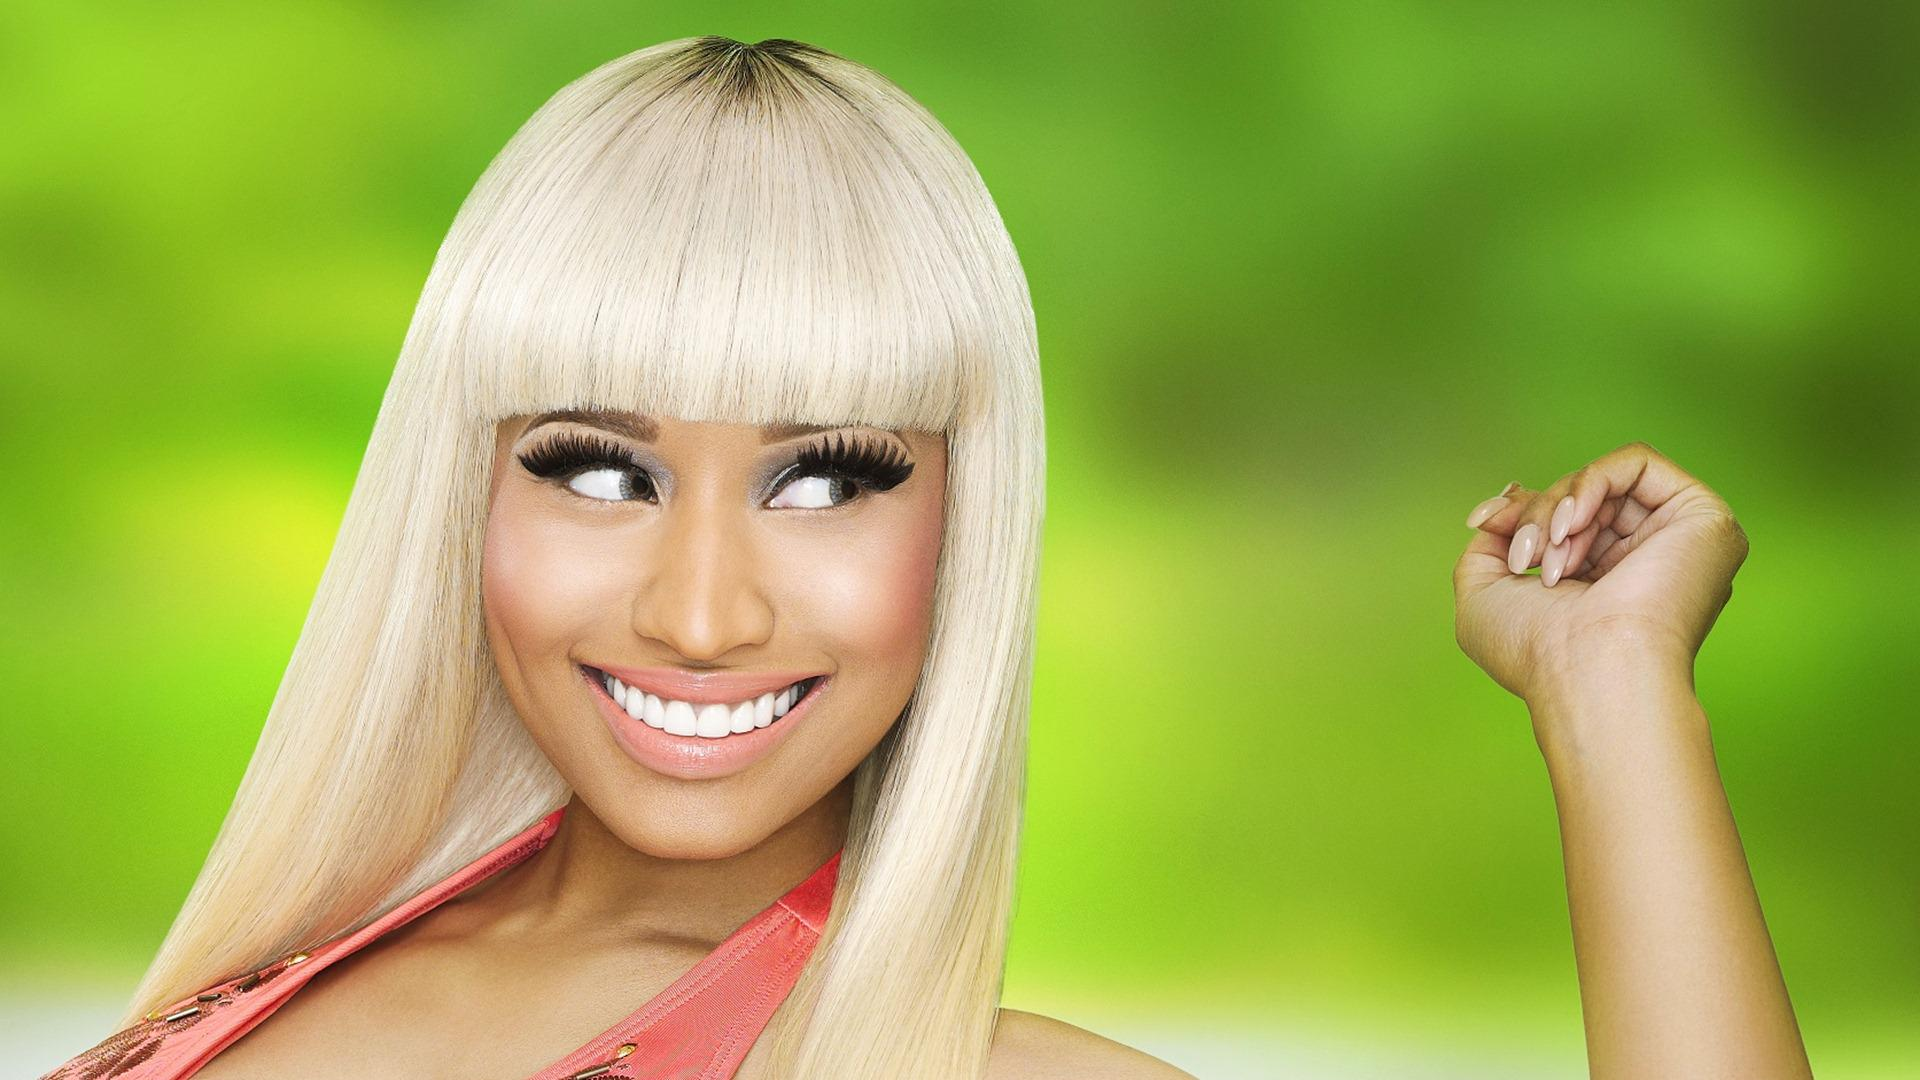 19 HD Nicki Minaj Wallpapers   HDWallSourcecom 1920x1080